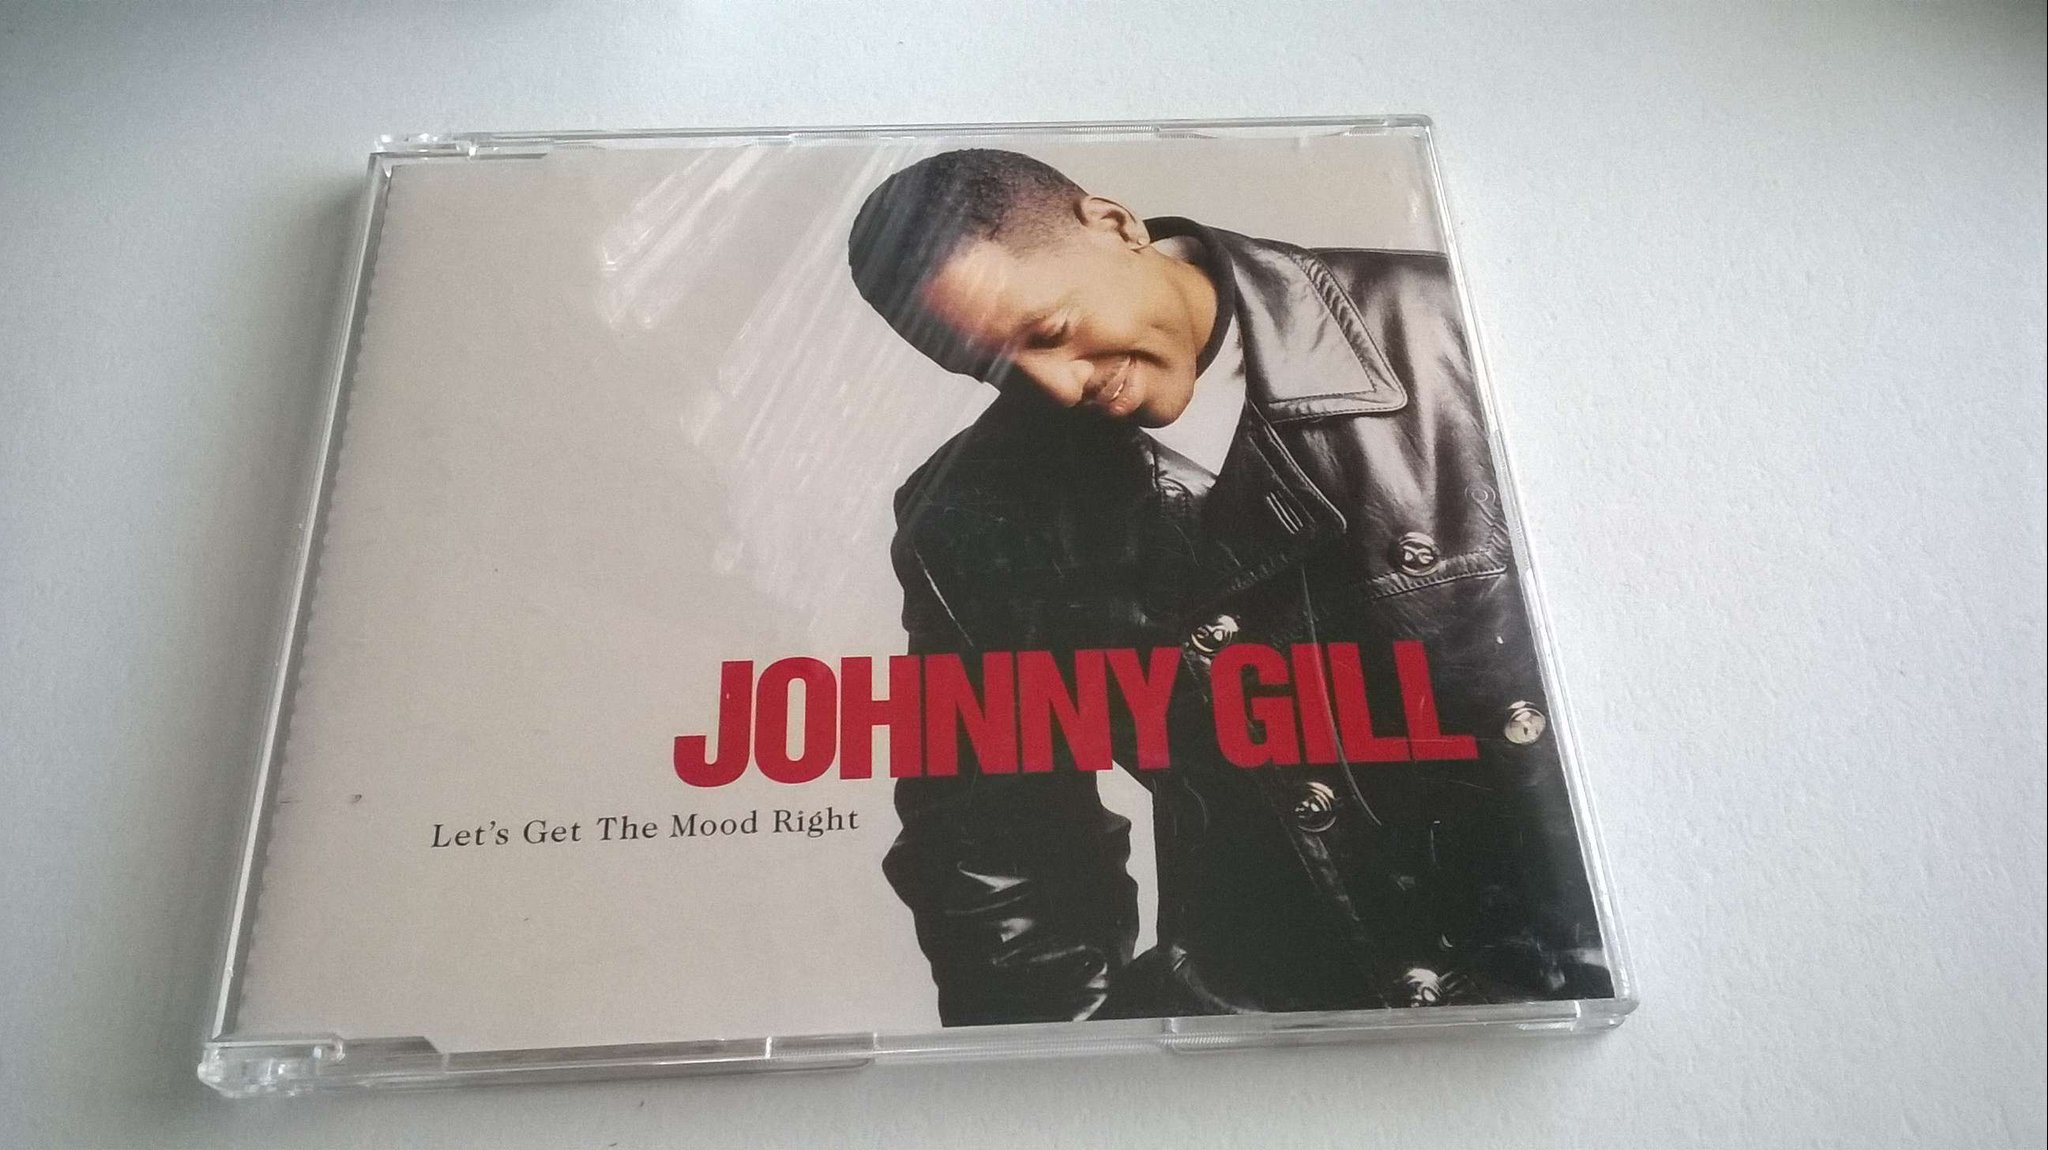 Johnny Gill - Let's Get The Mood Right, Single, Promo(!) CD